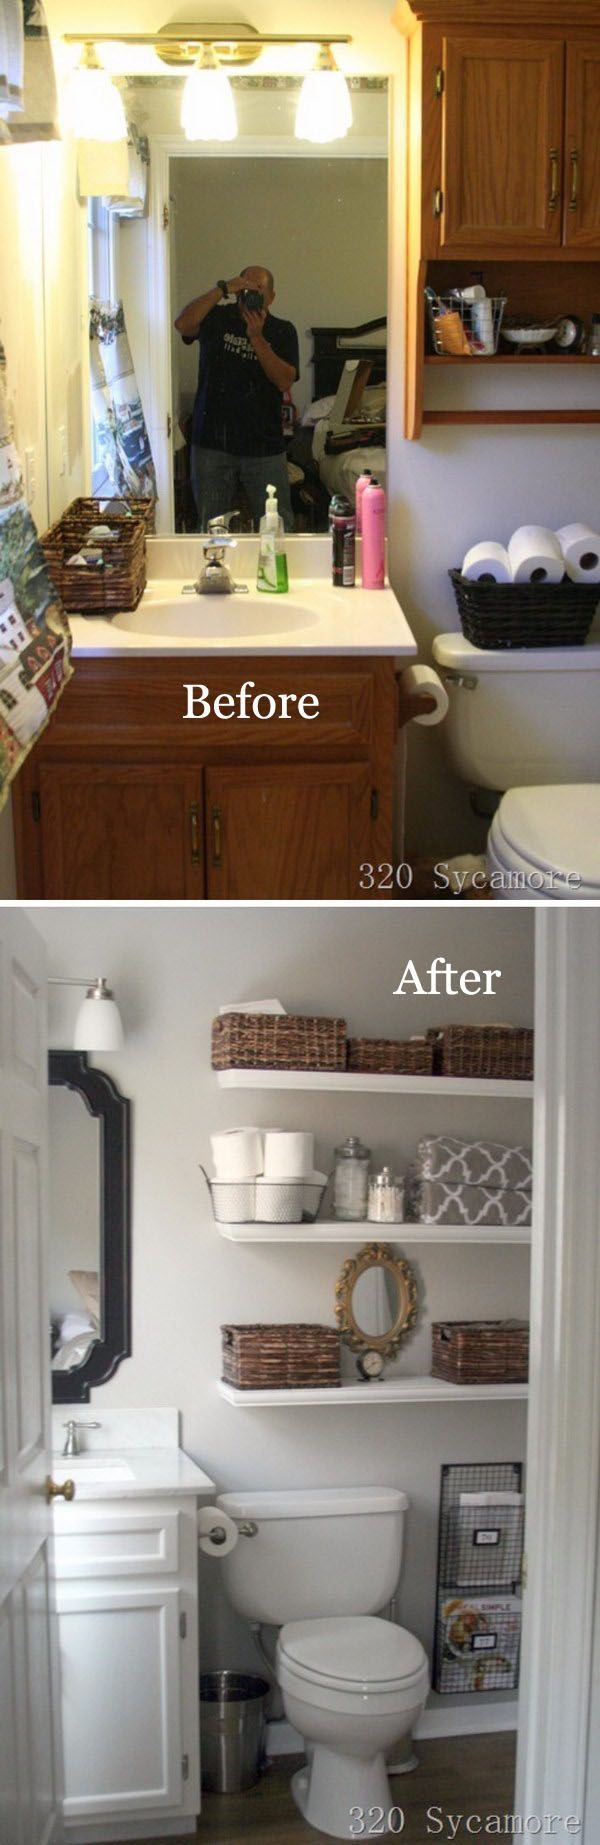 Photo Gallery For Website Before and After Awesome Bathroom Makeovers